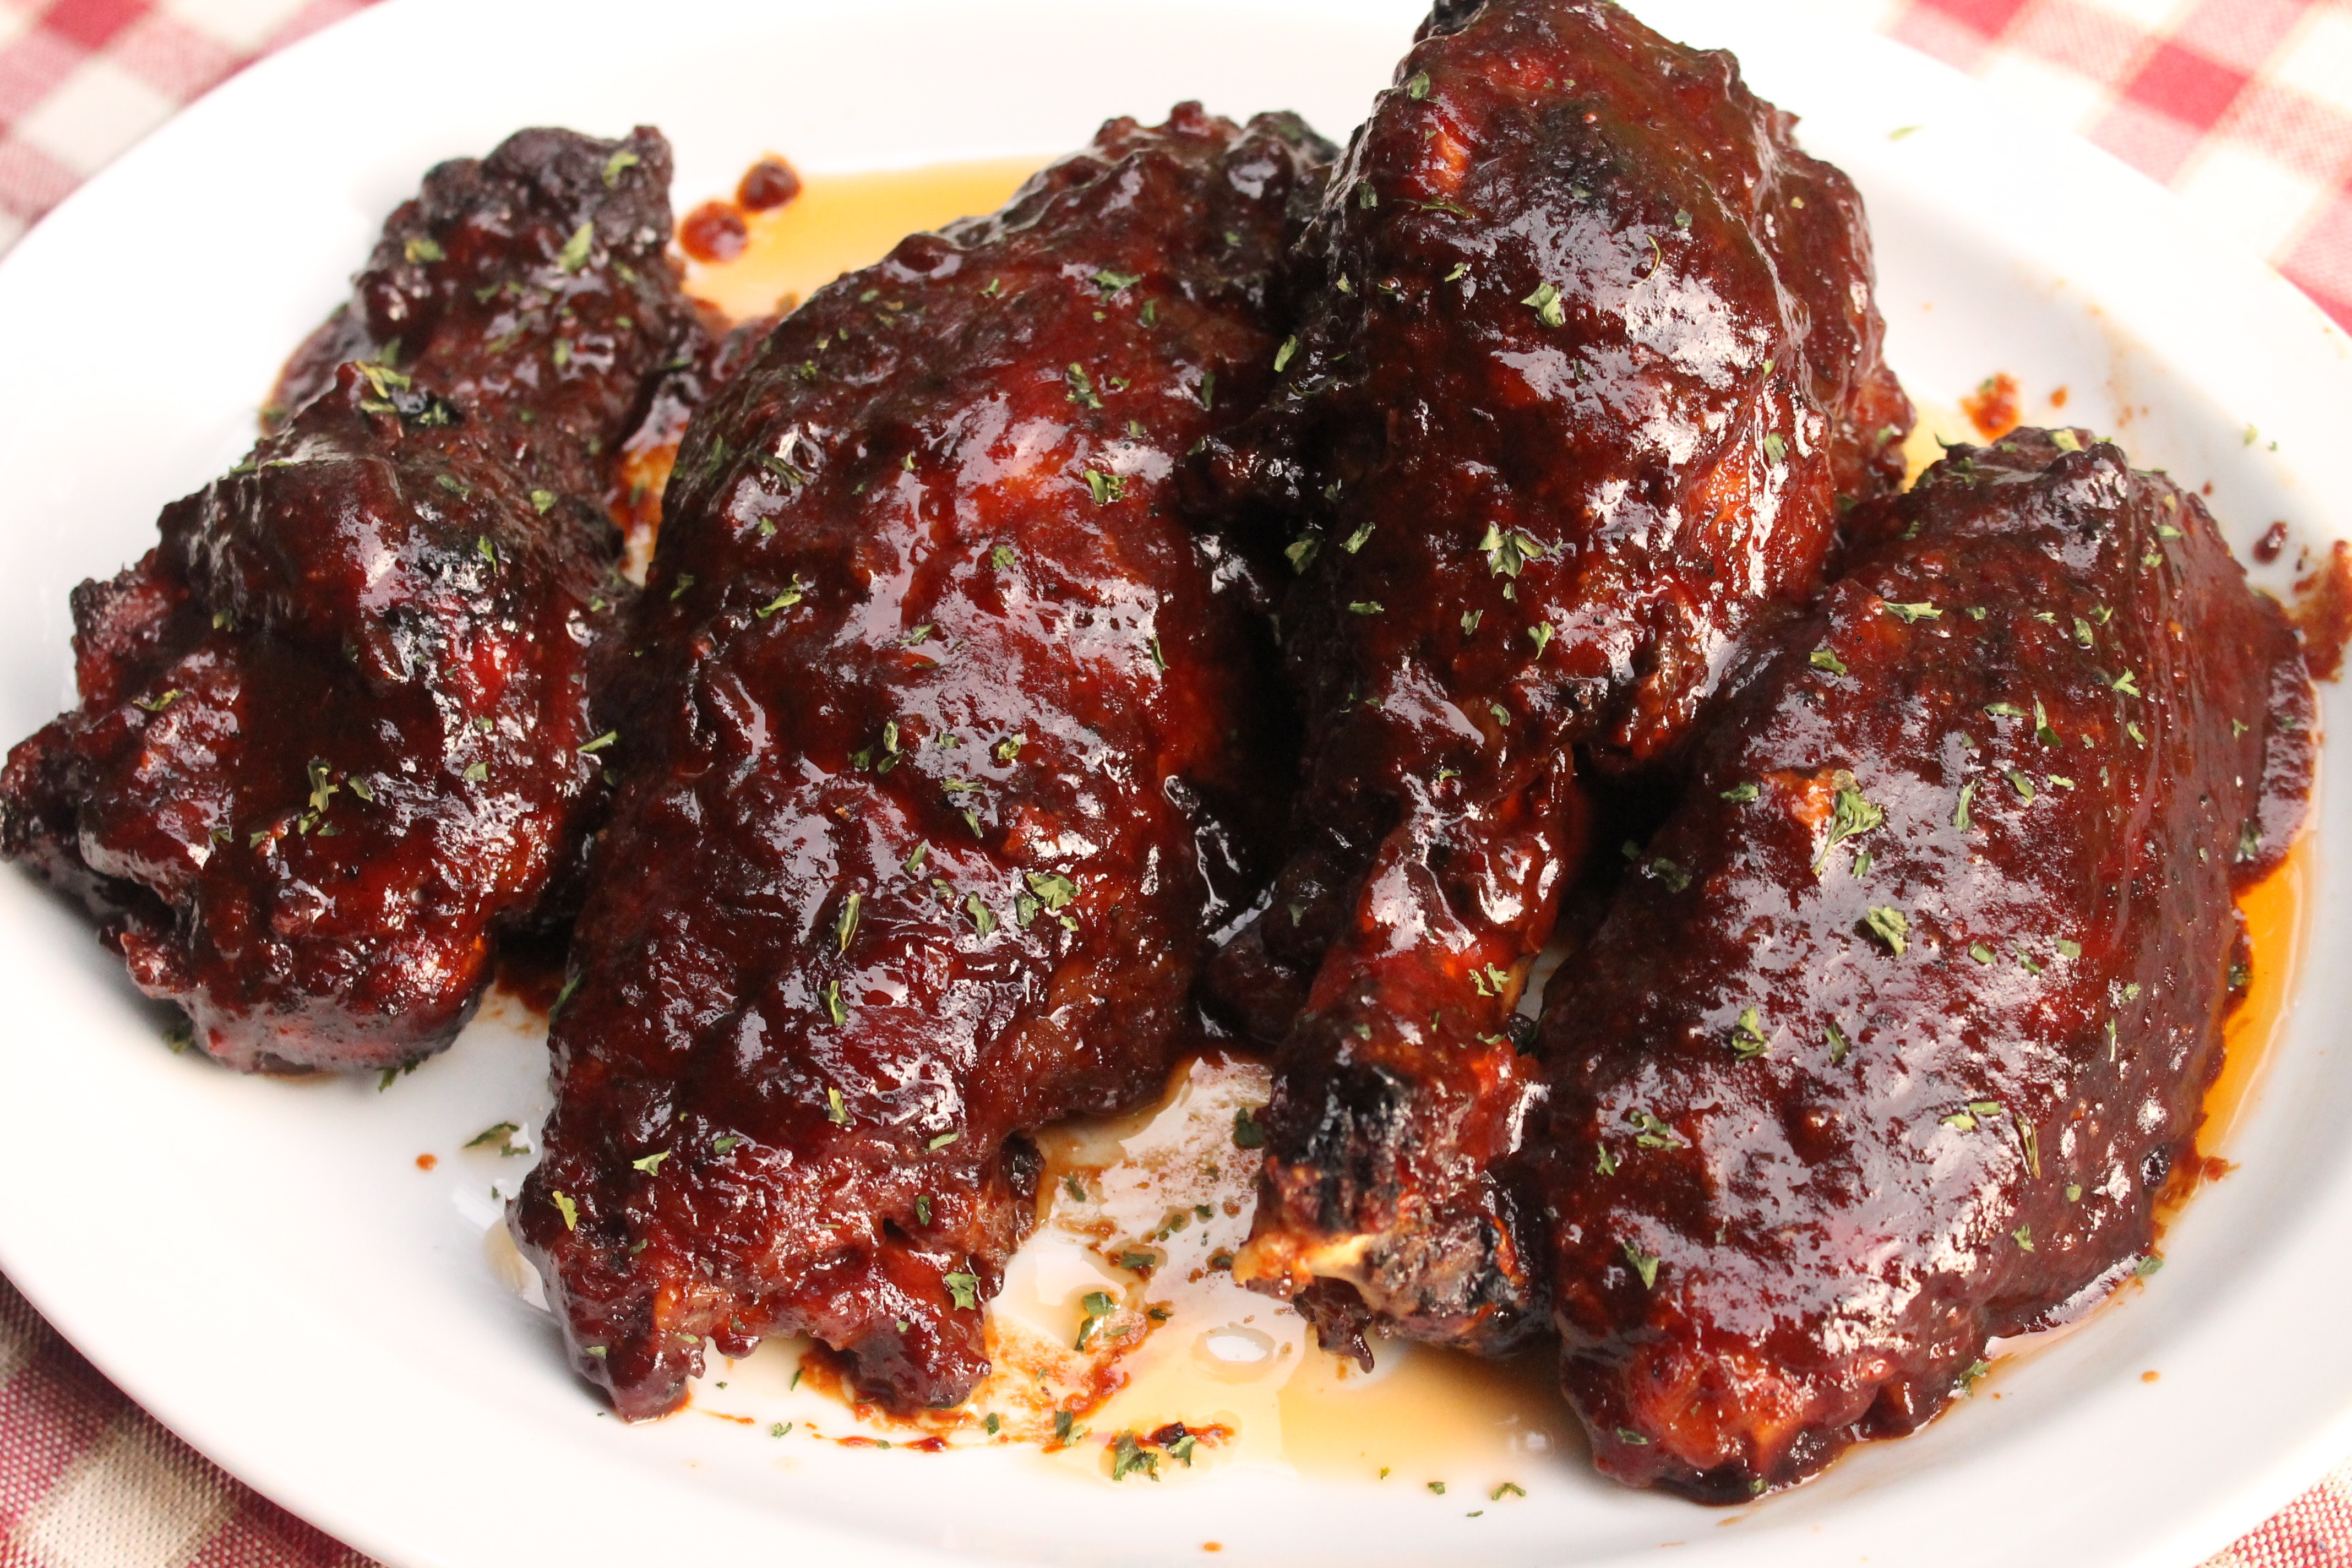 These BBQ turkey wings are smokey and savory. Simply succulent!